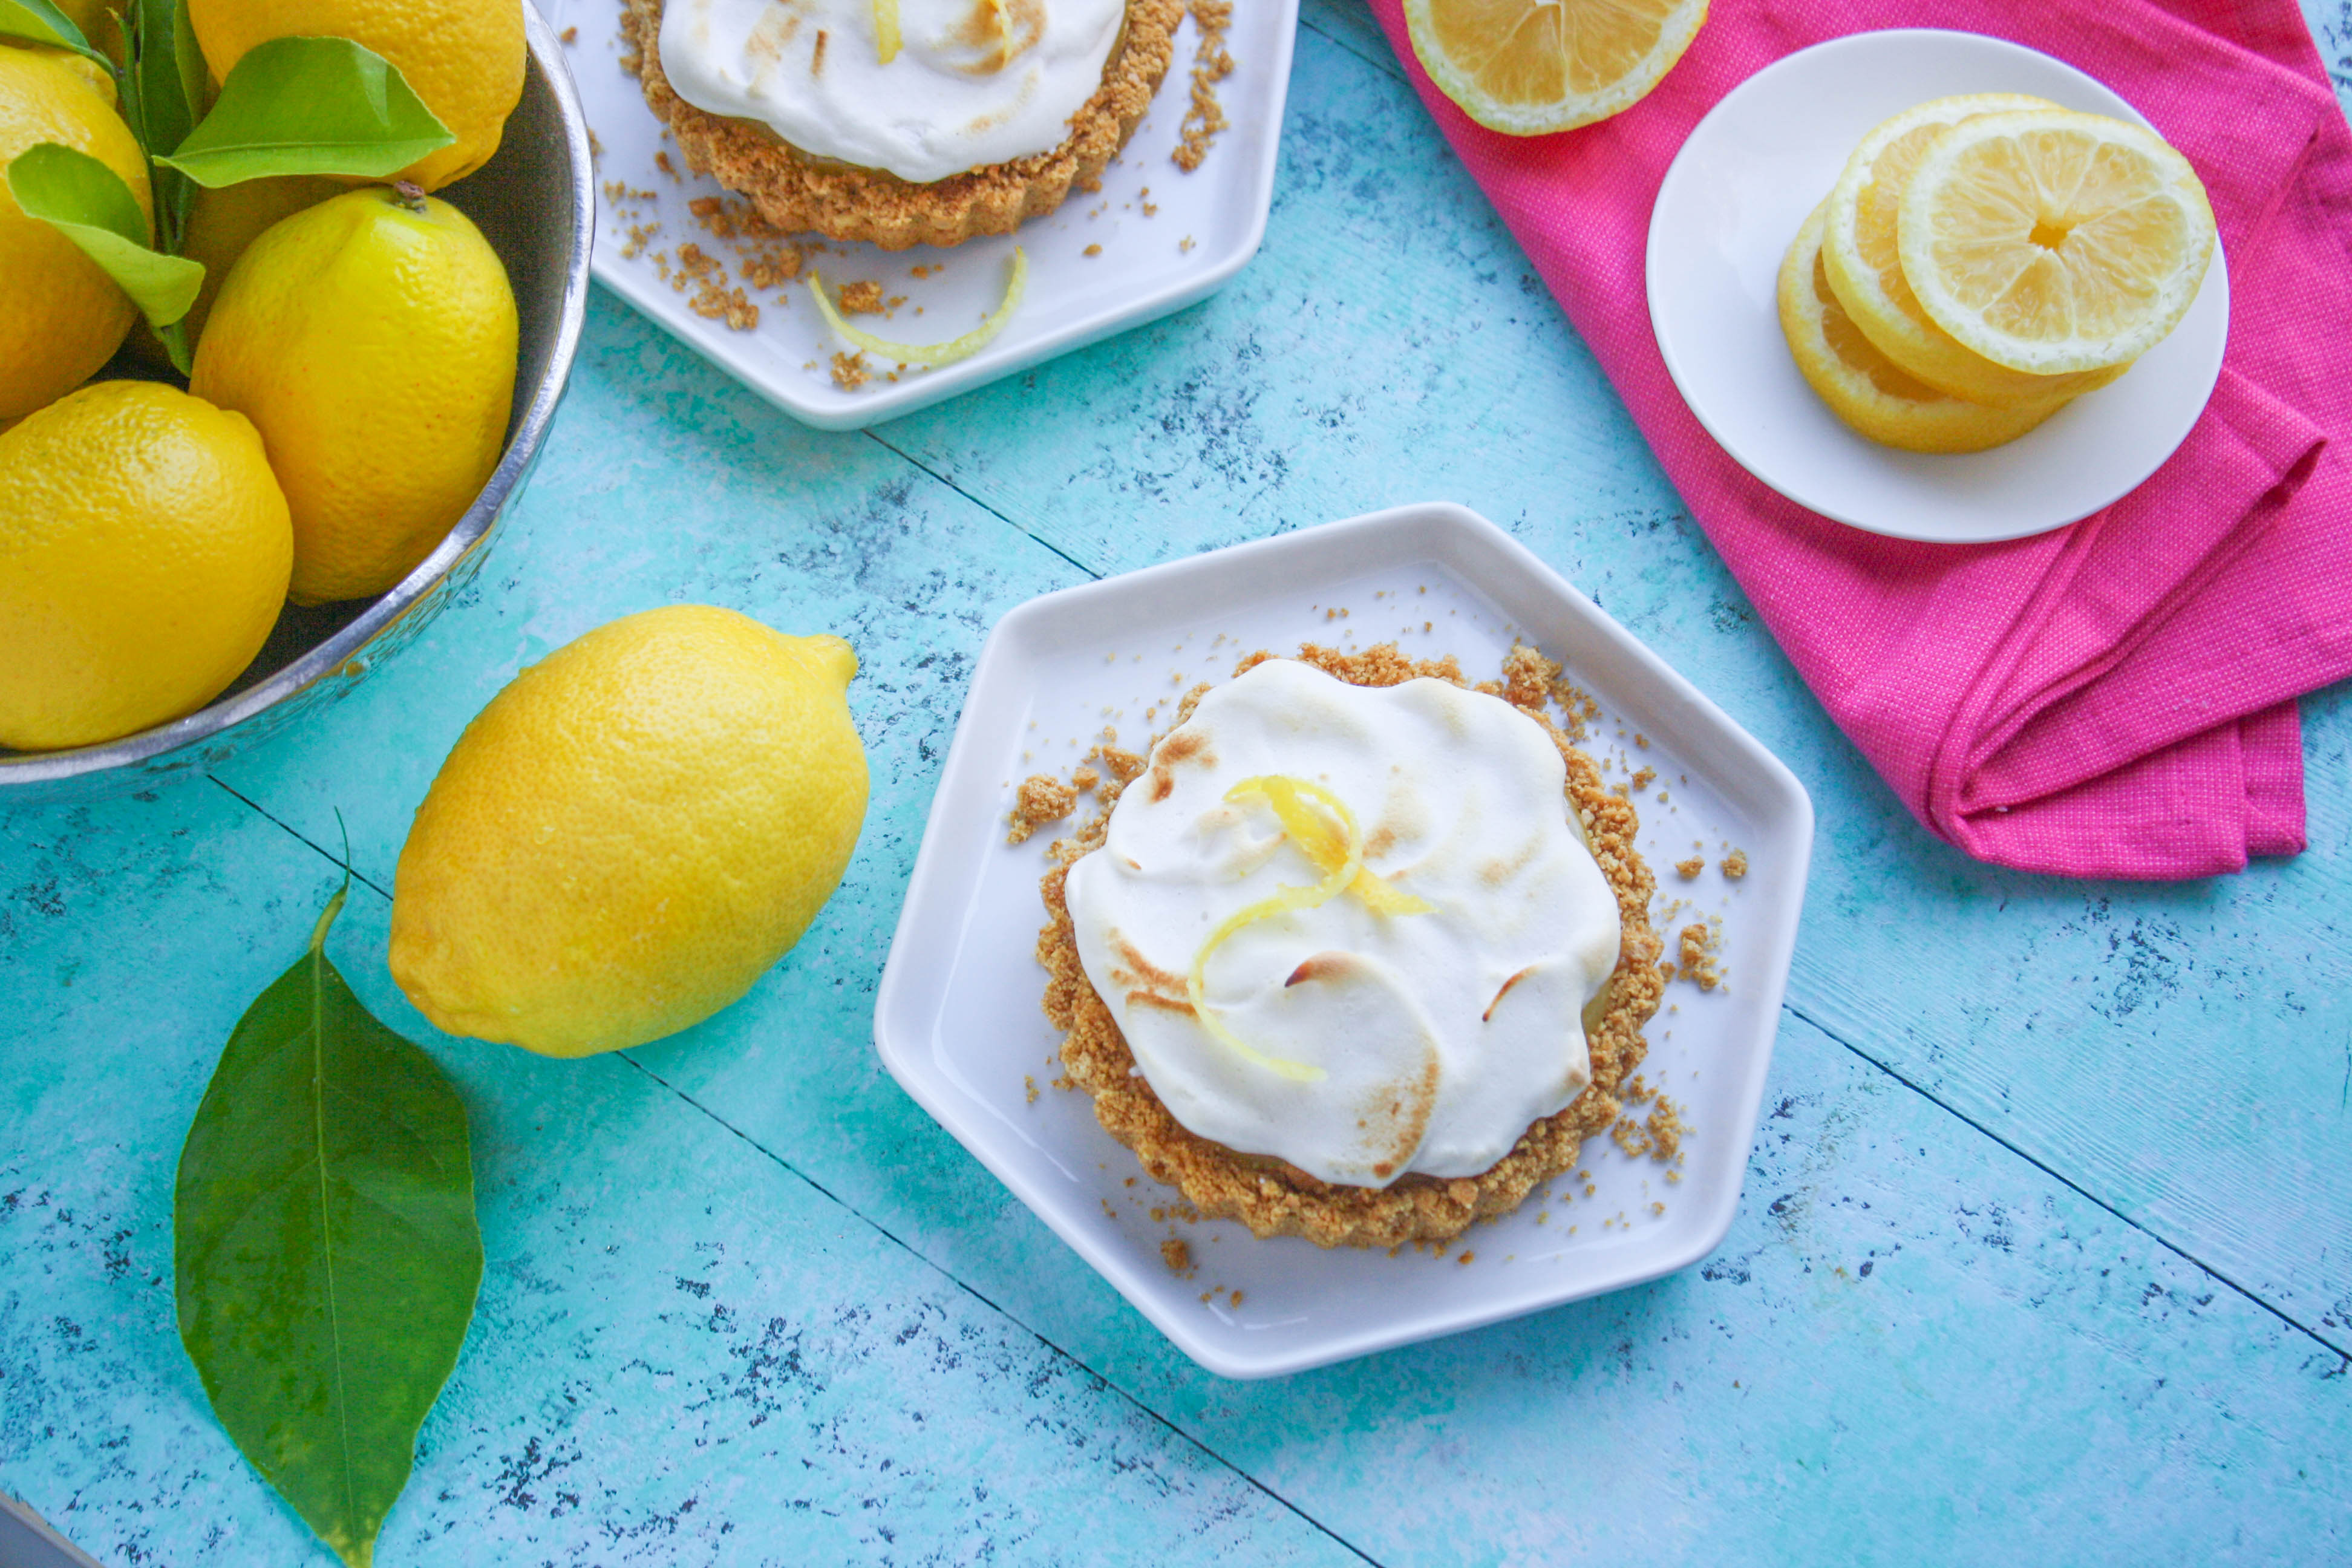 Lemon Meringue Tartlets are a bright and flavorful citrusy dessert. Lemon Meringue Tartlets are a fabulous citrus treat.